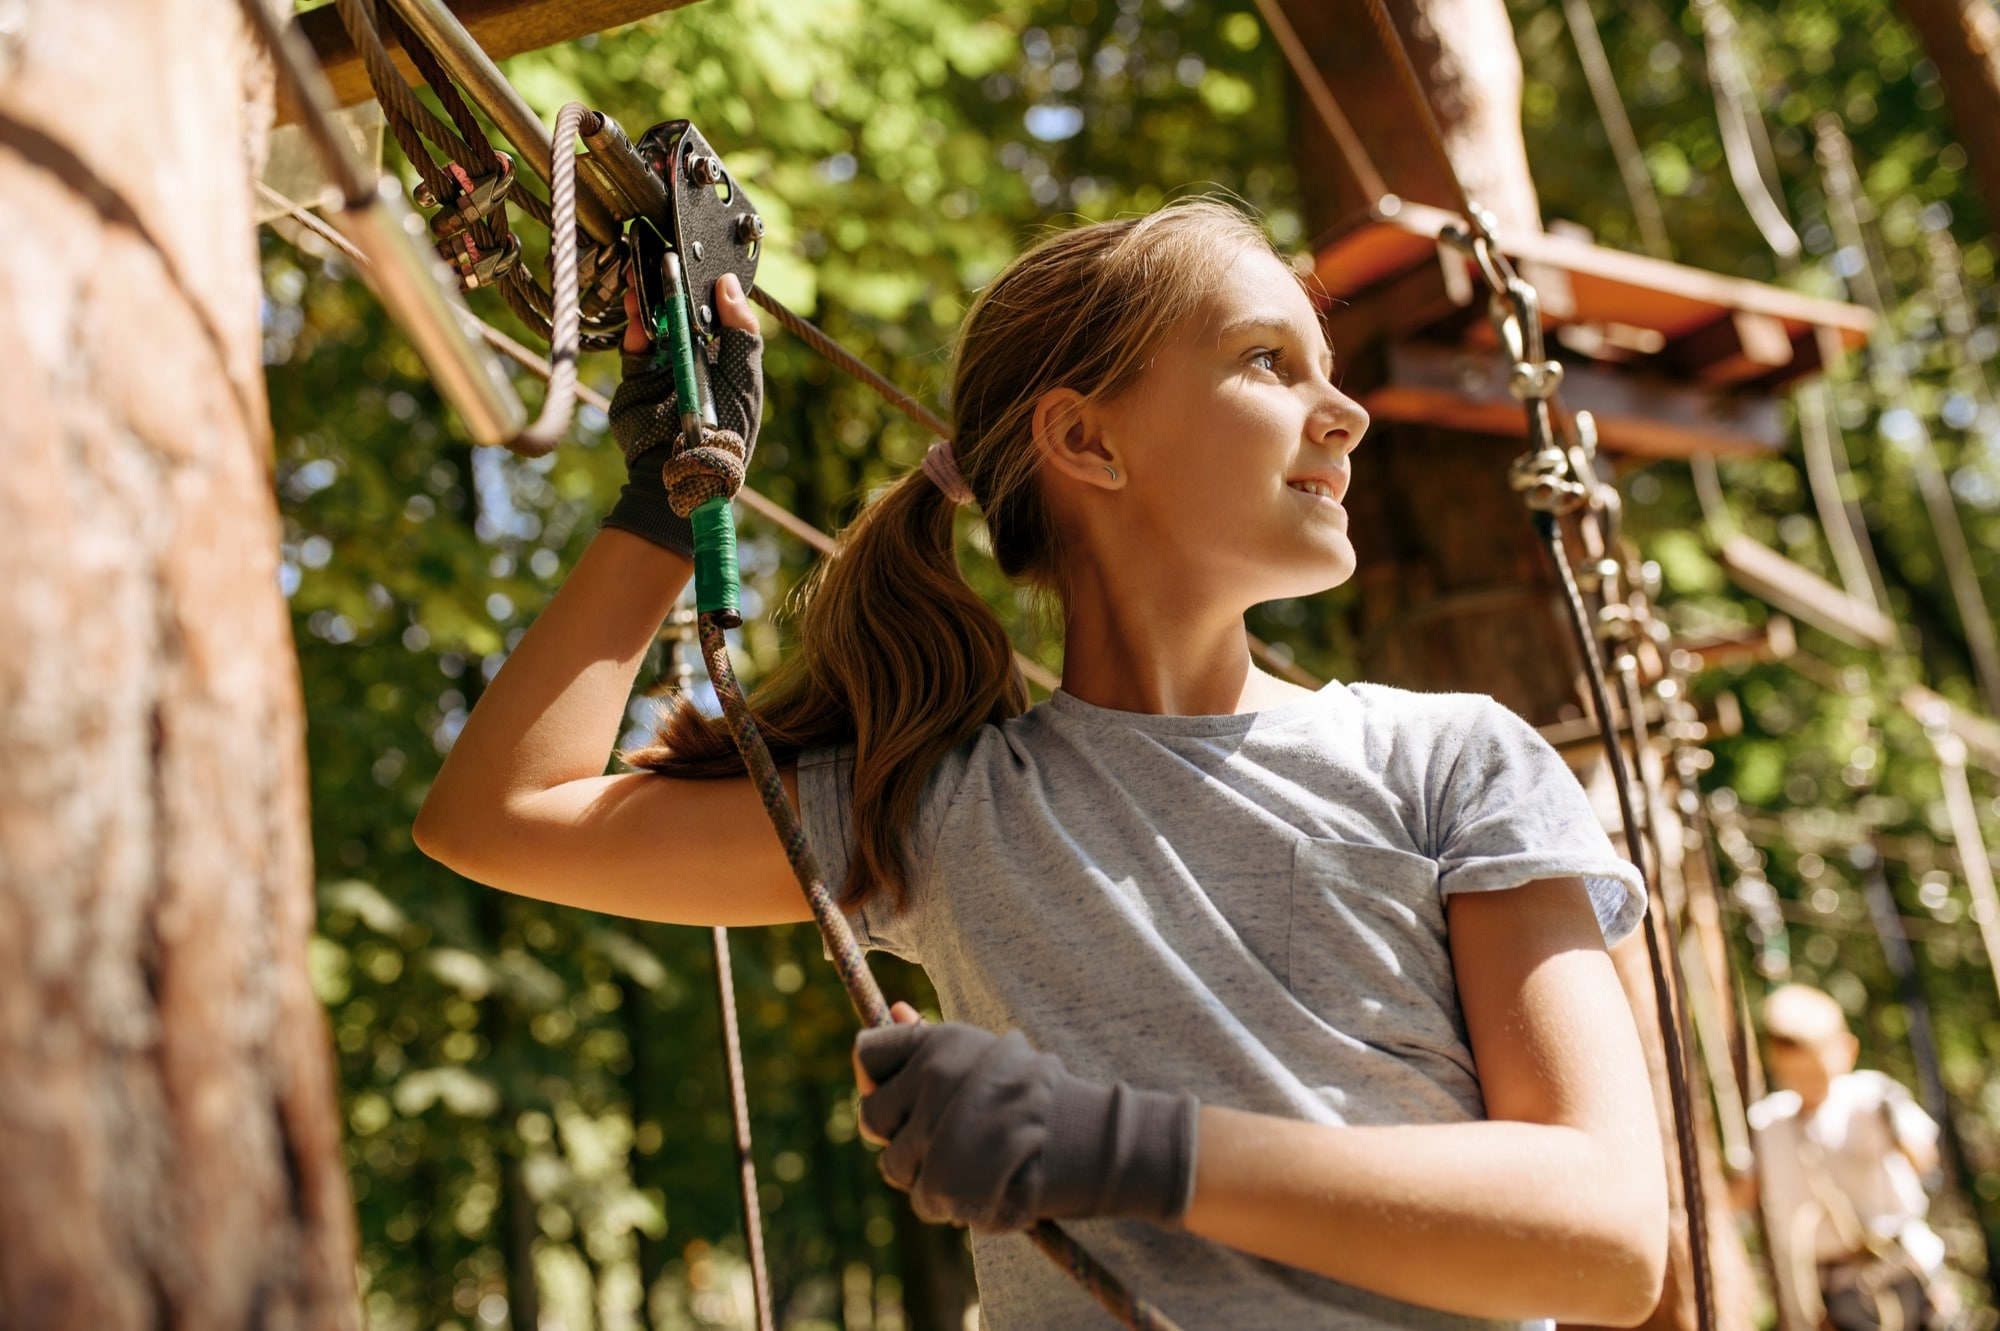 As a professional climber, I could offer training courses and try to